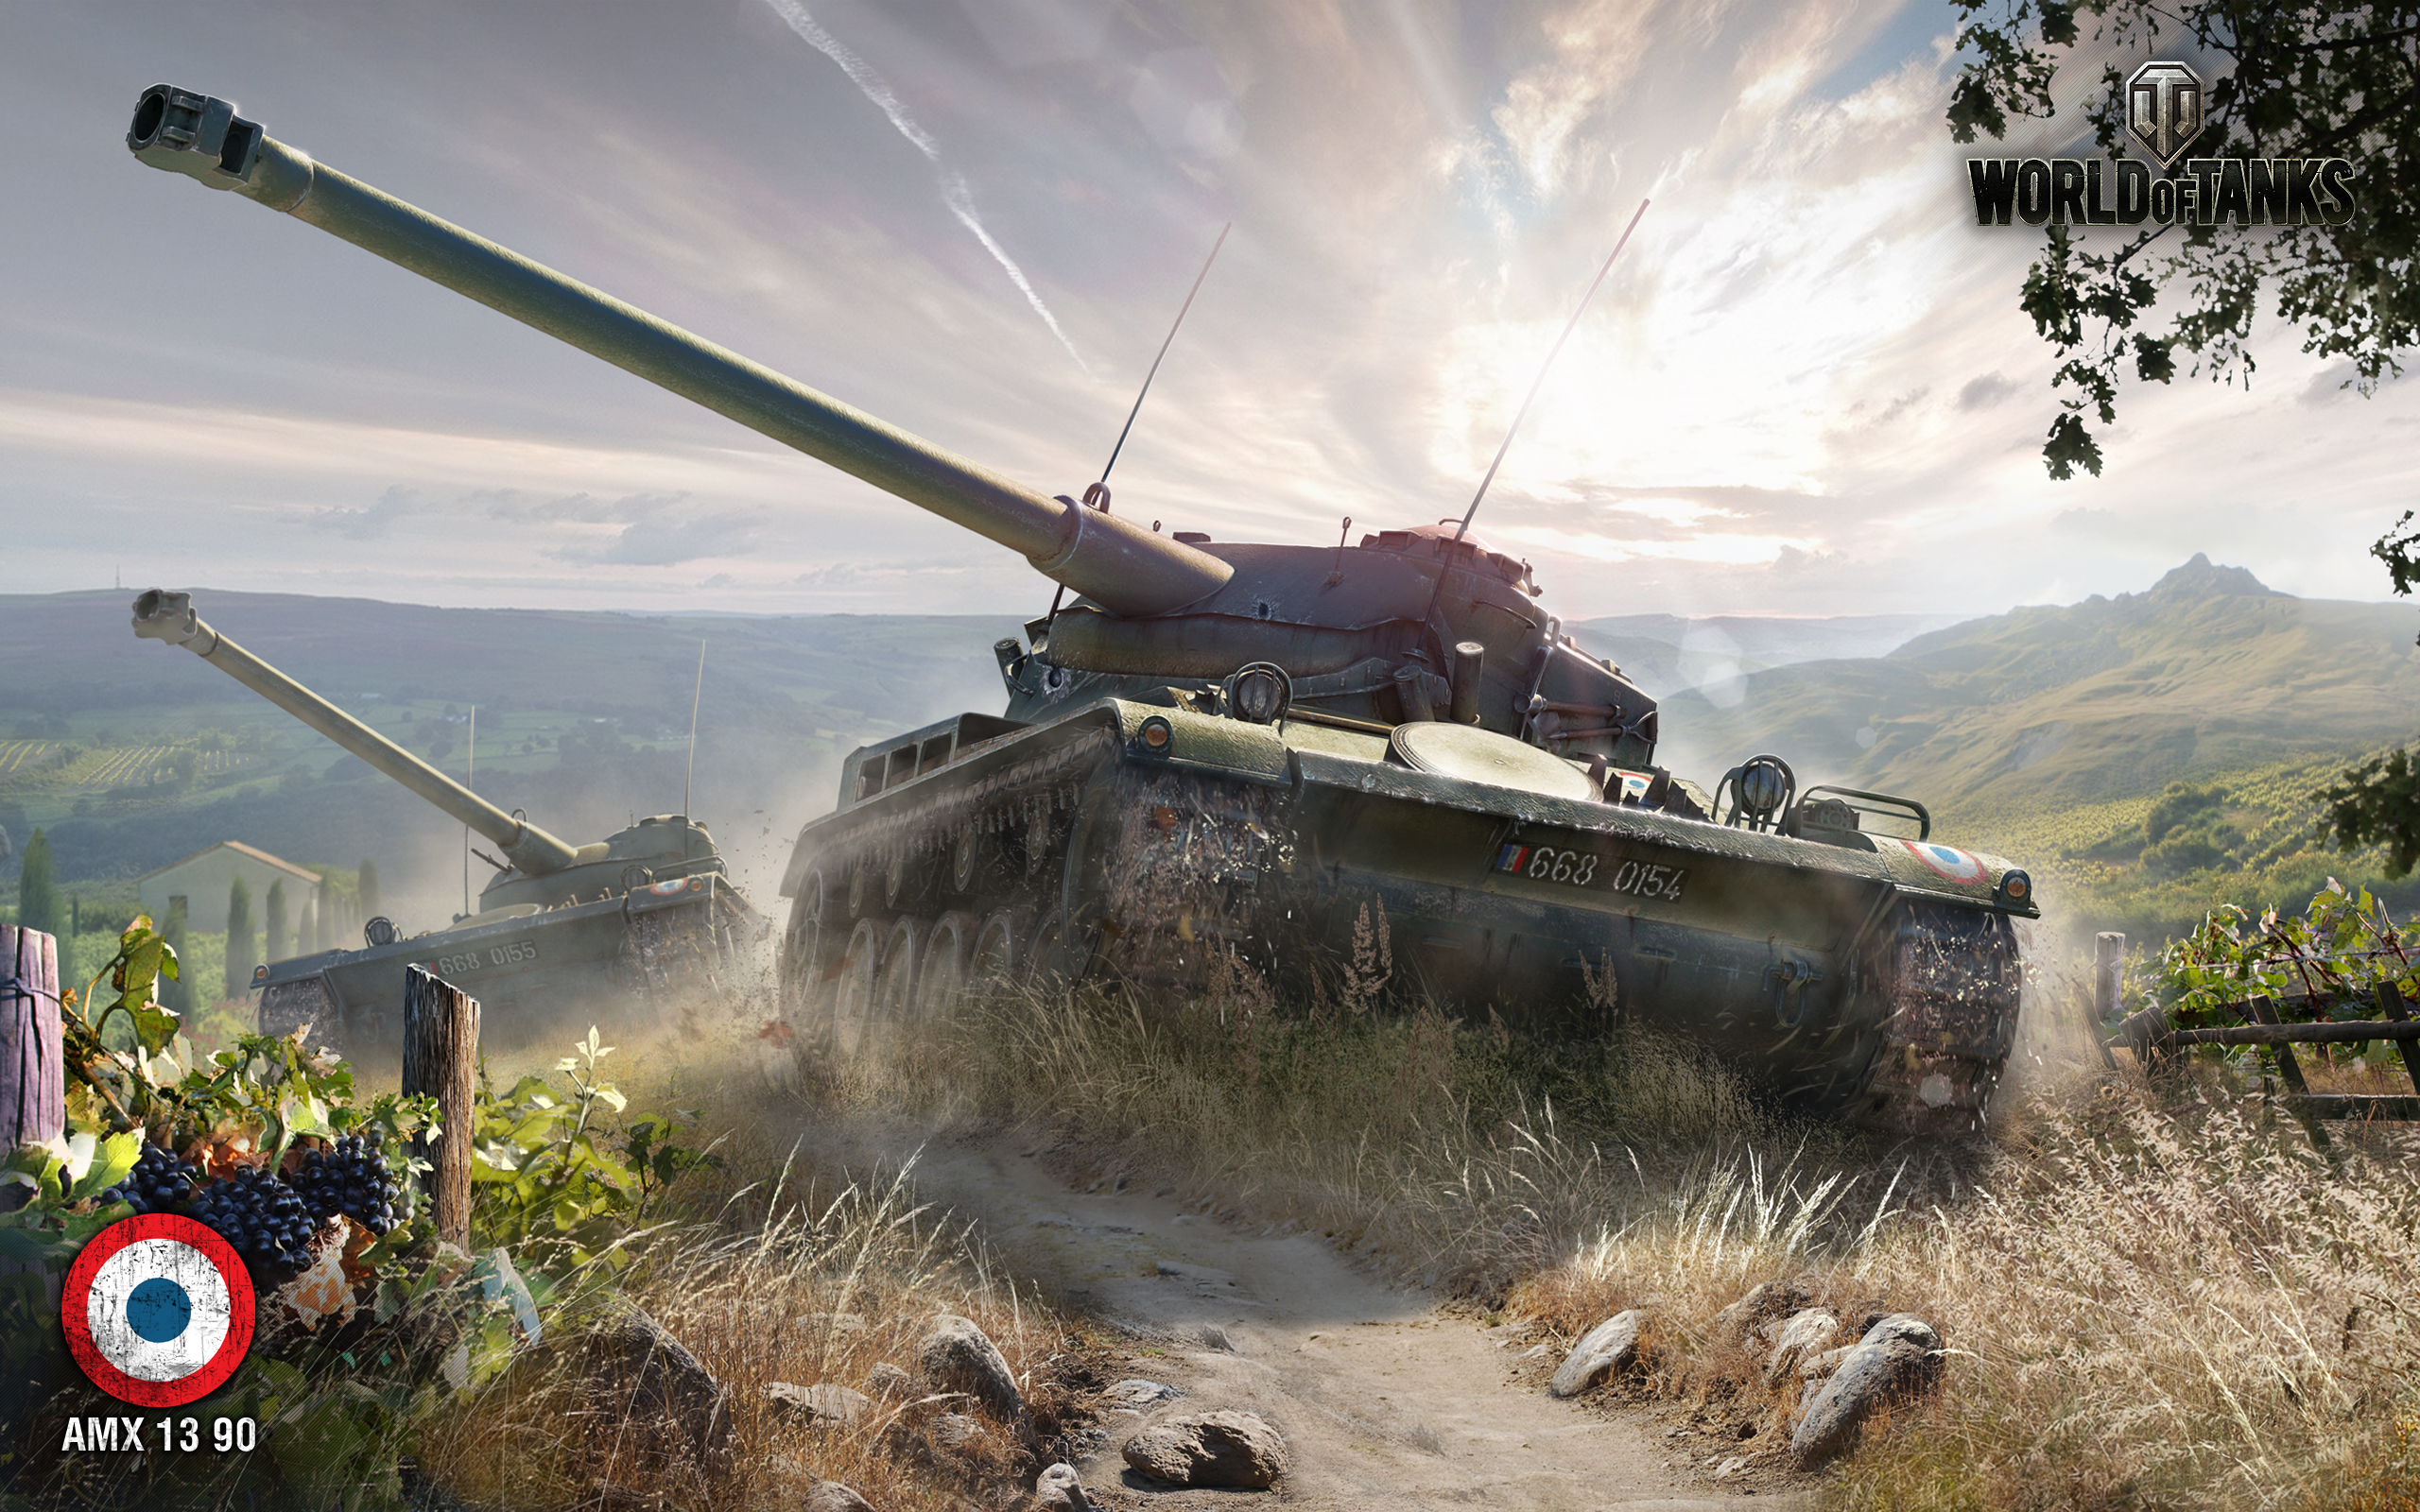 HD Wallpapers AMX 13 90 World of Tanks